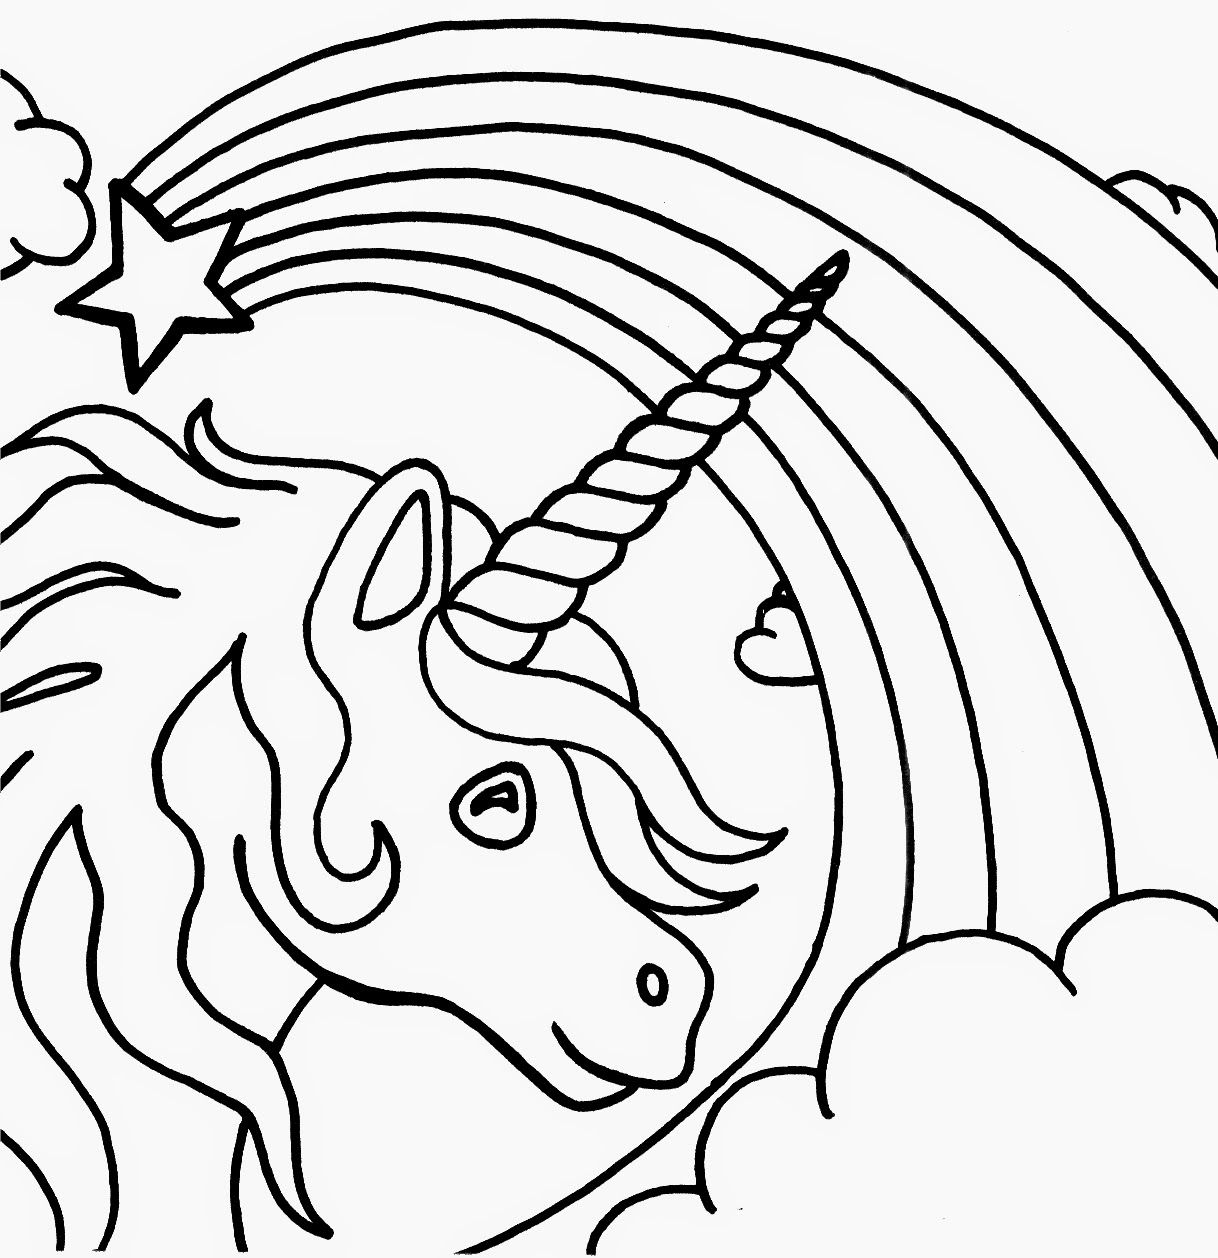 coloring unicorn colour unicorn coloring pages to download and print for free colour coloring unicorn